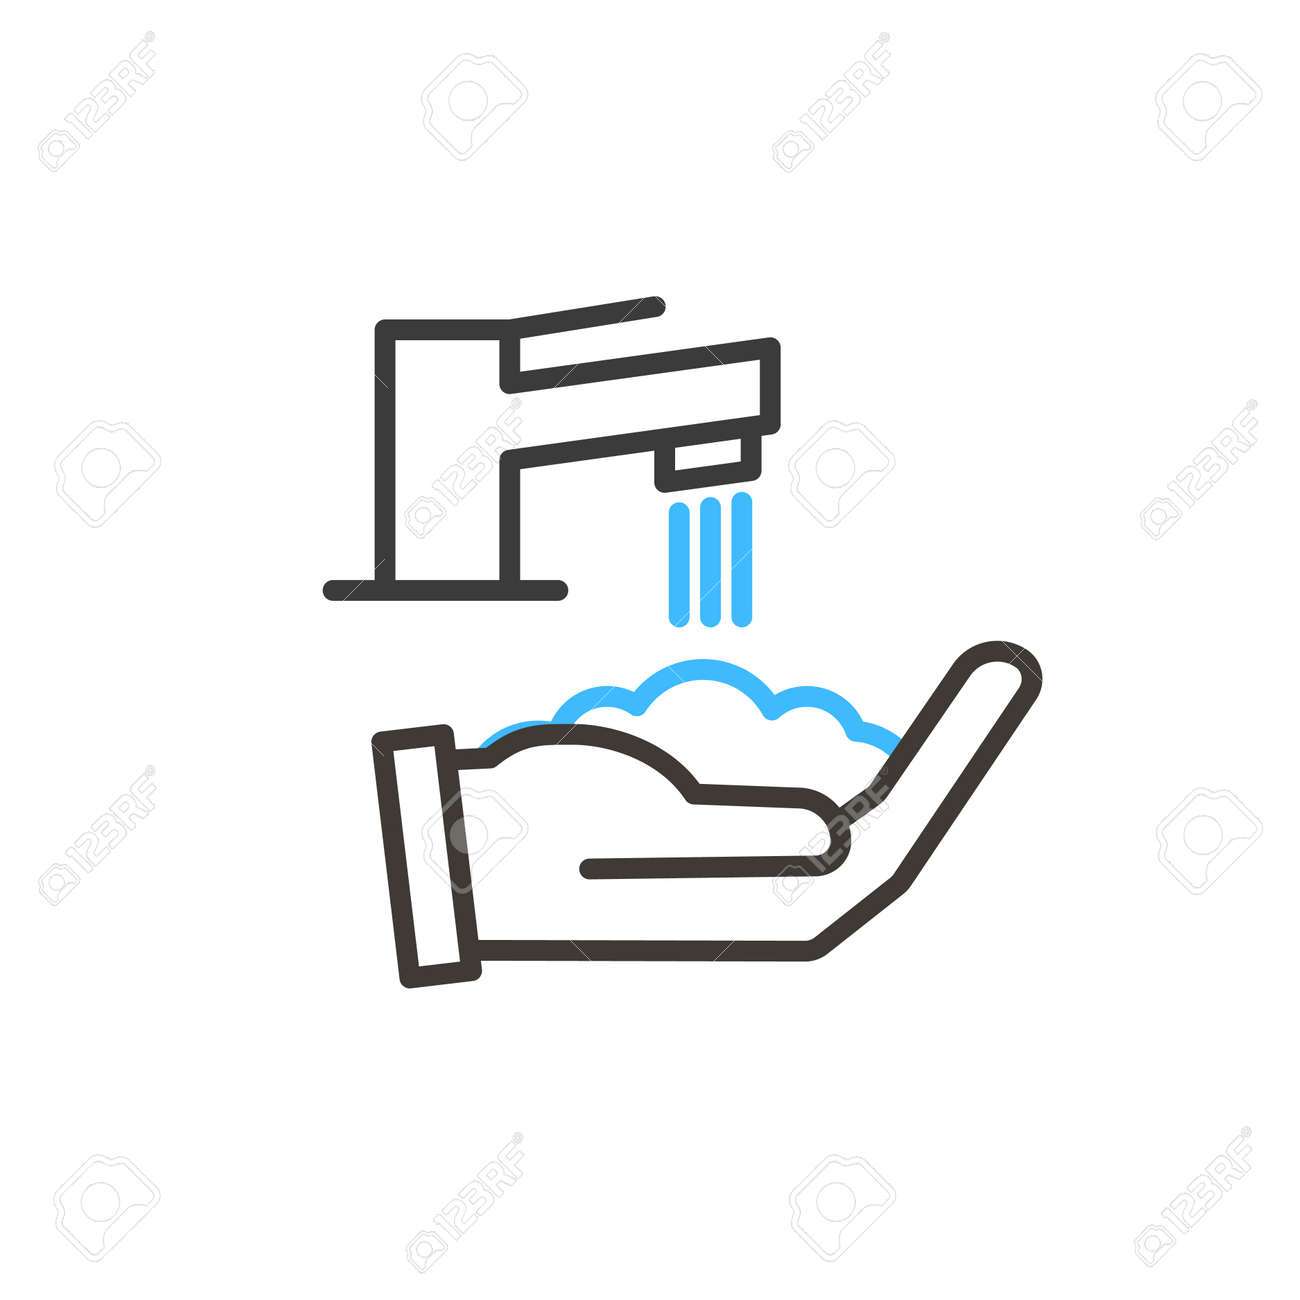 Coronavirus covid-19 prevention hand washing illustration. Vector thin line icon with hands sanitizing with water and soap. Simple design for antibacterial and protection from infection awareness - 158456421